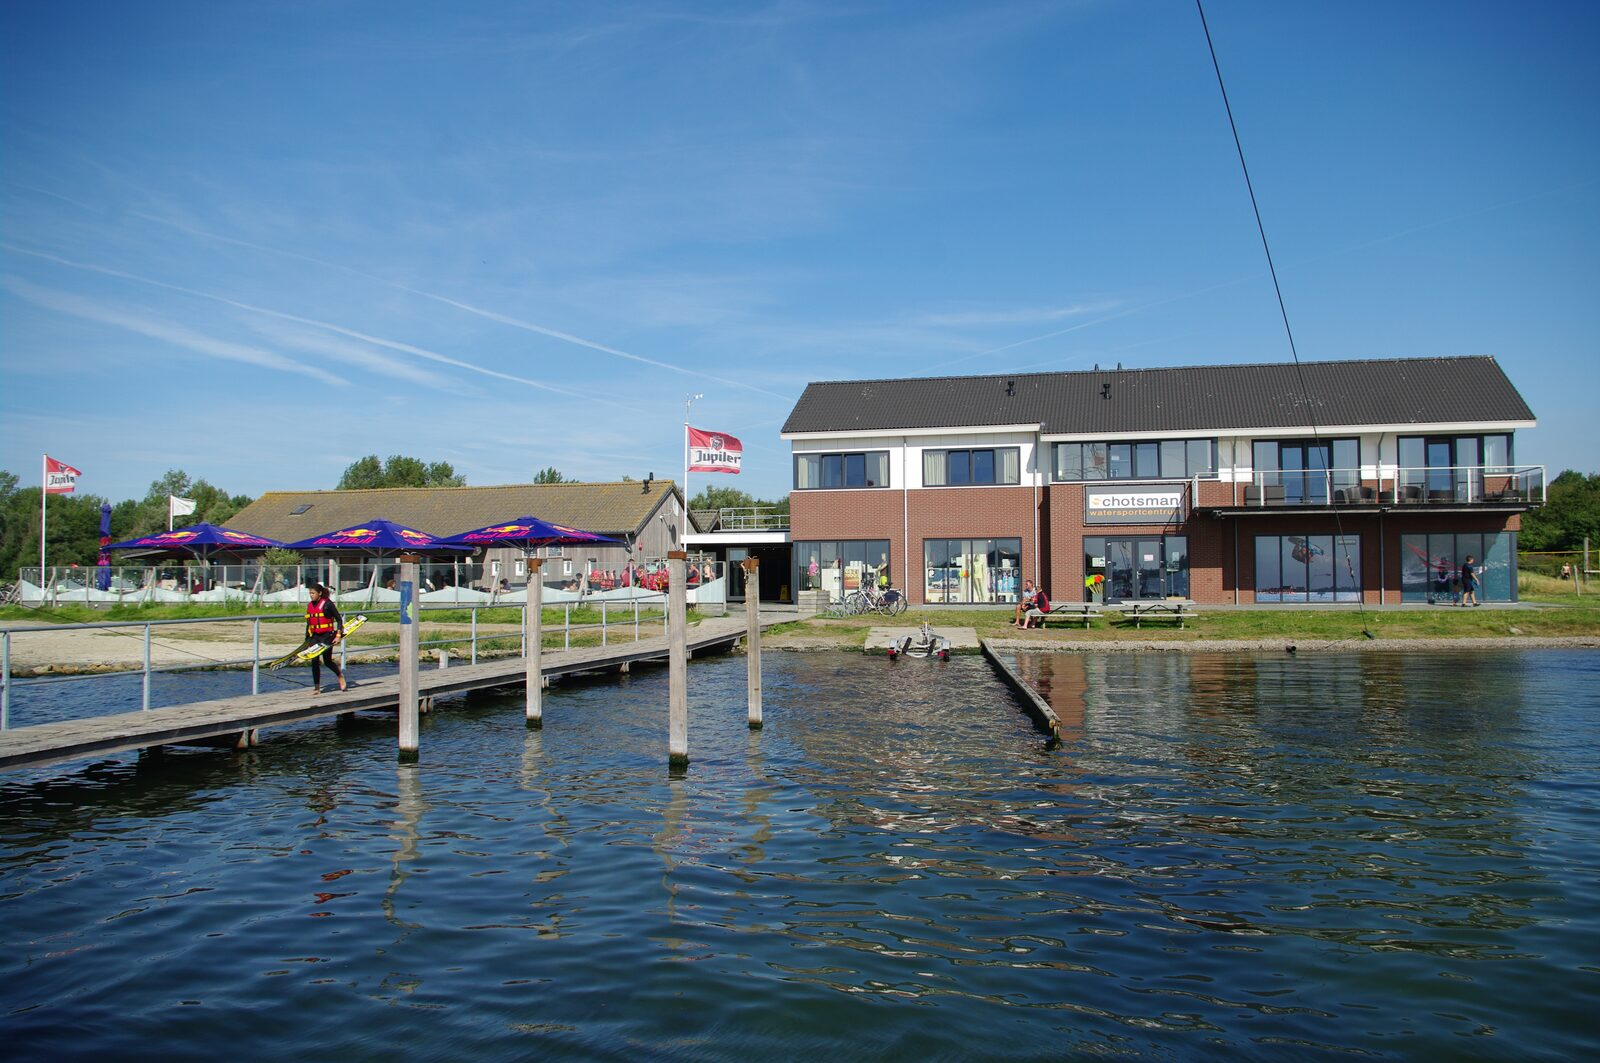 Schotsman watersport along the Veerse meer in Zeeland